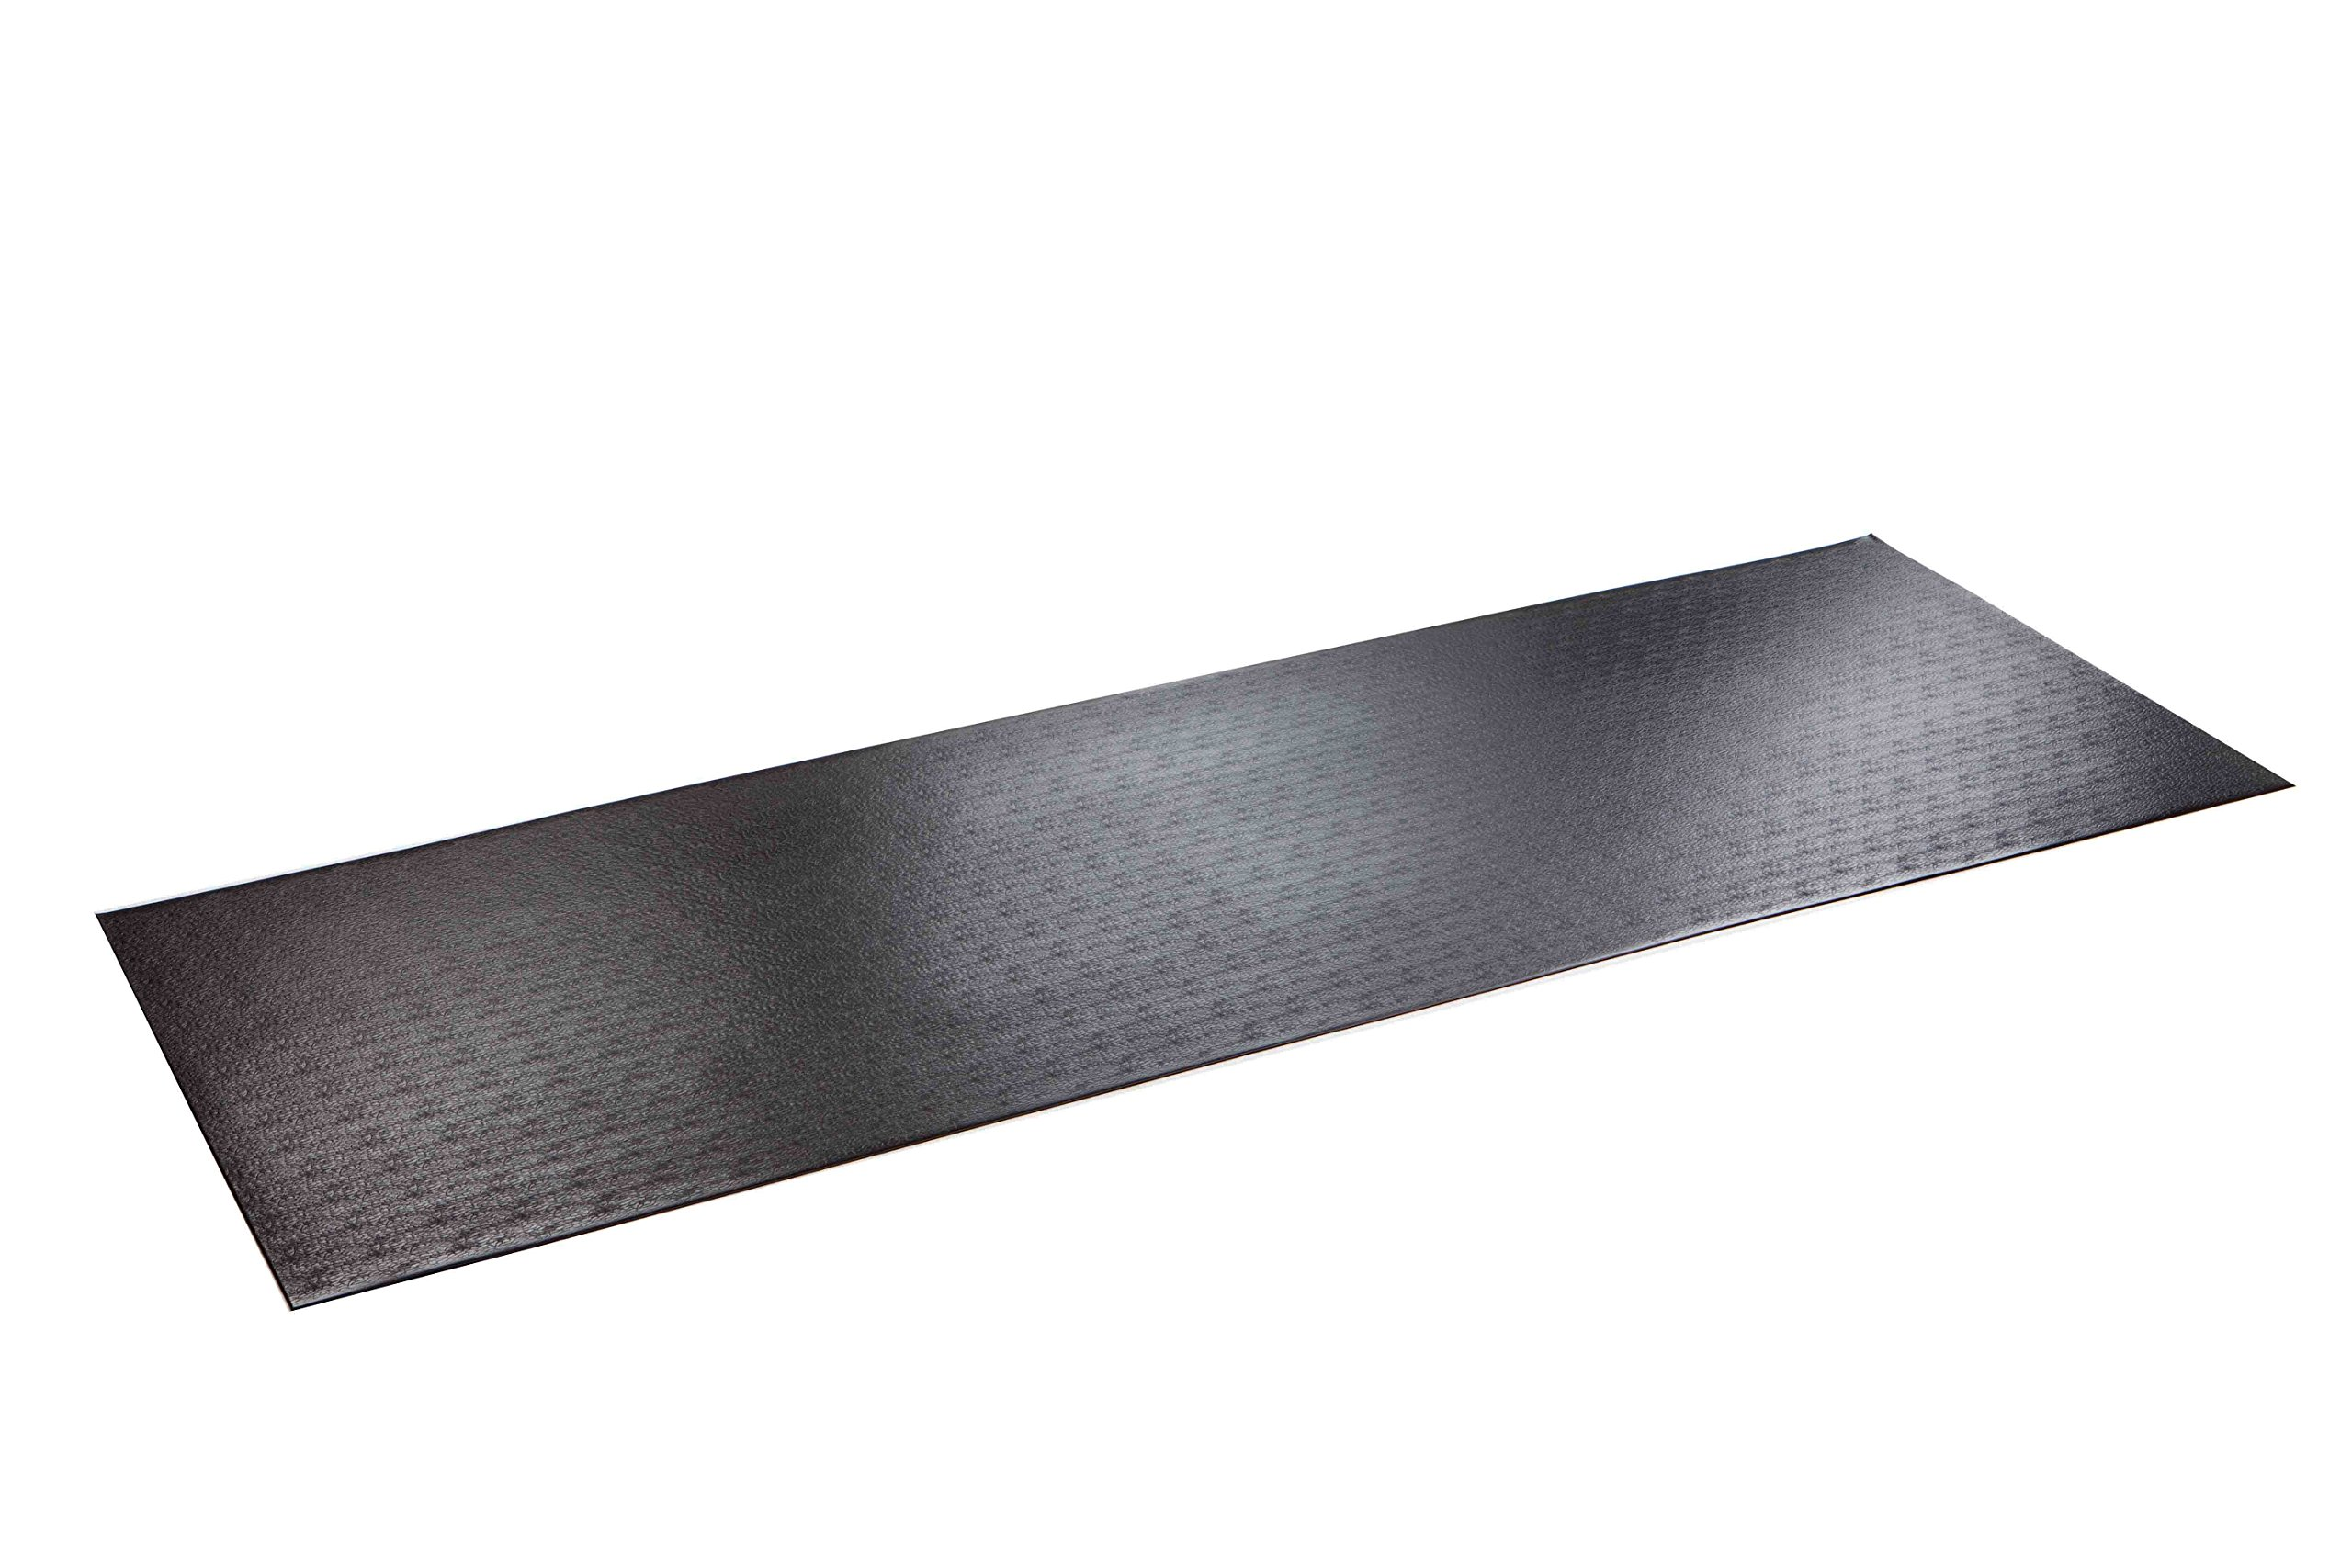 SuperMats High Density Commercial Grade Solid Equipment Mat 29GS Made in U.S.A. for Large Treadmills Ellipticals Rowers Water Rowing Machines Recumbent Bikes and Exercise Equipment  (3-Feet x 8.5-Feet) (36'' x 102'') (91.4 cm x 259.1 cm) by SuperMats